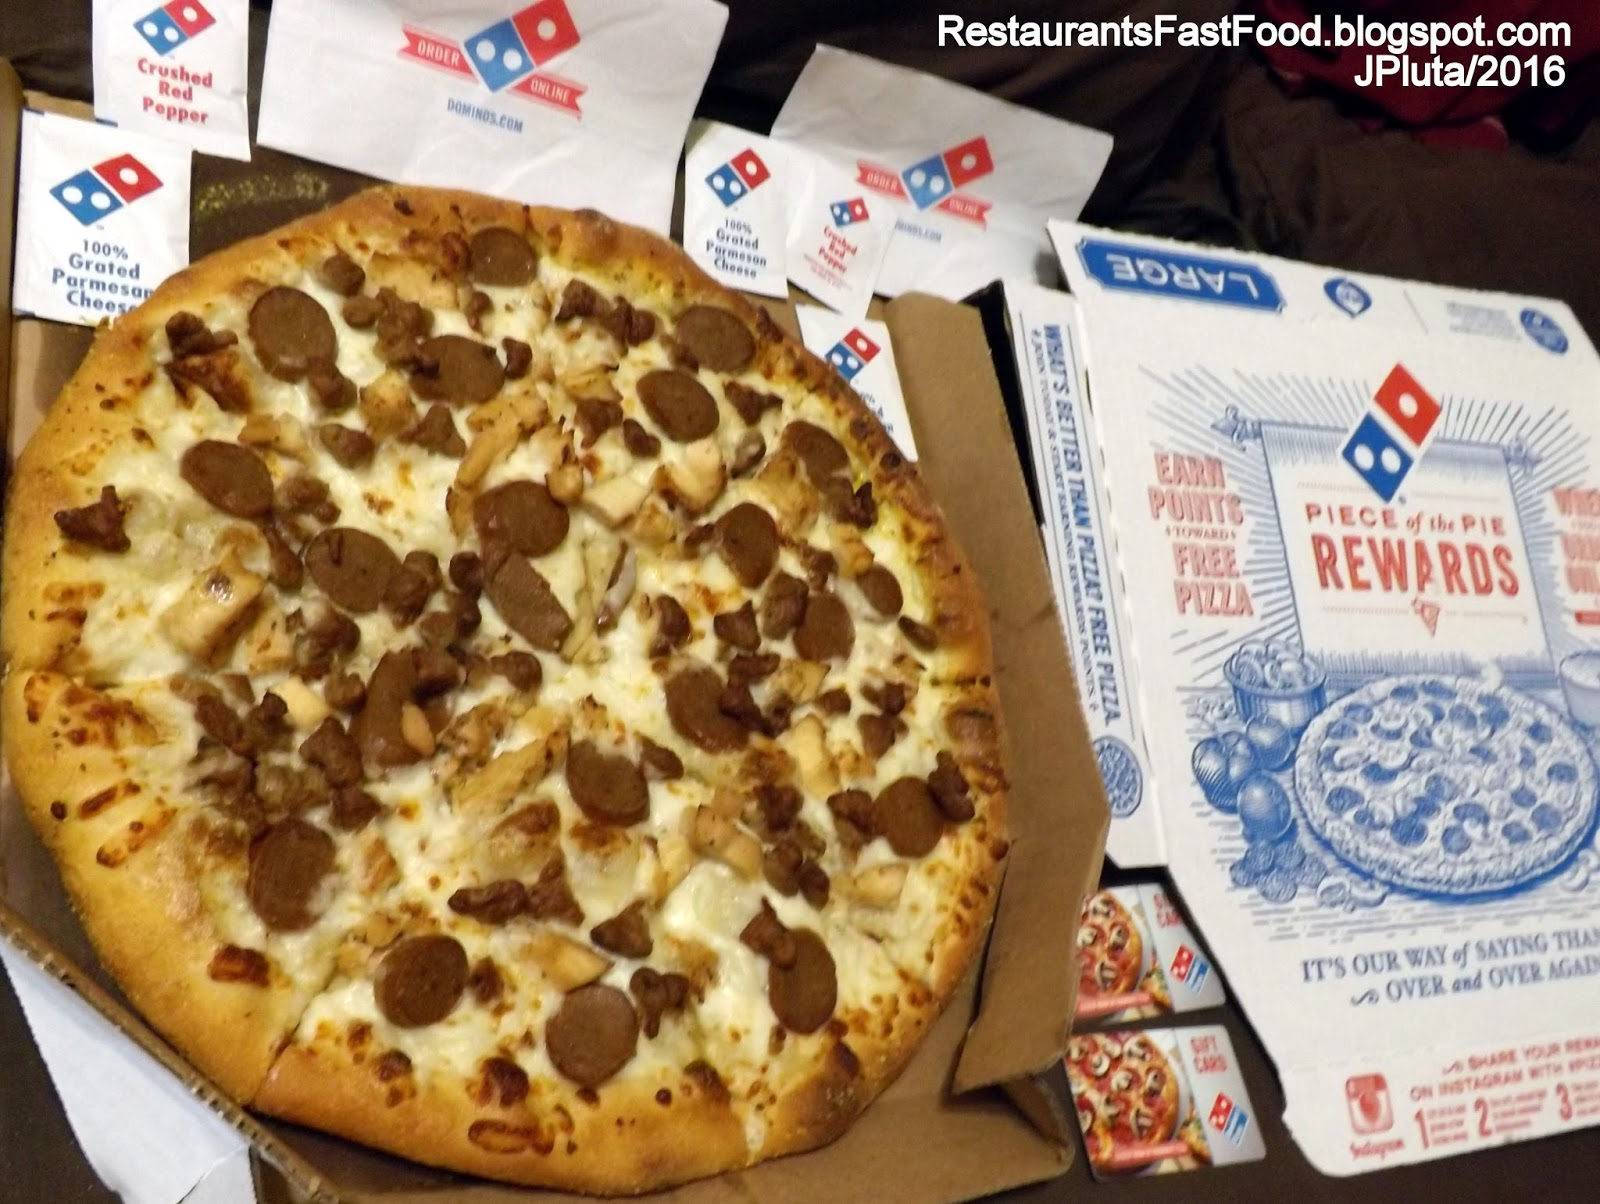 restaurant fast food menu mcdonald s dq bk hamburger pizza mexican domino s pizza large 3 topping sausage sliced sausage and chicken white cheese sauce pizza pie domino s pizza delivery restaurant